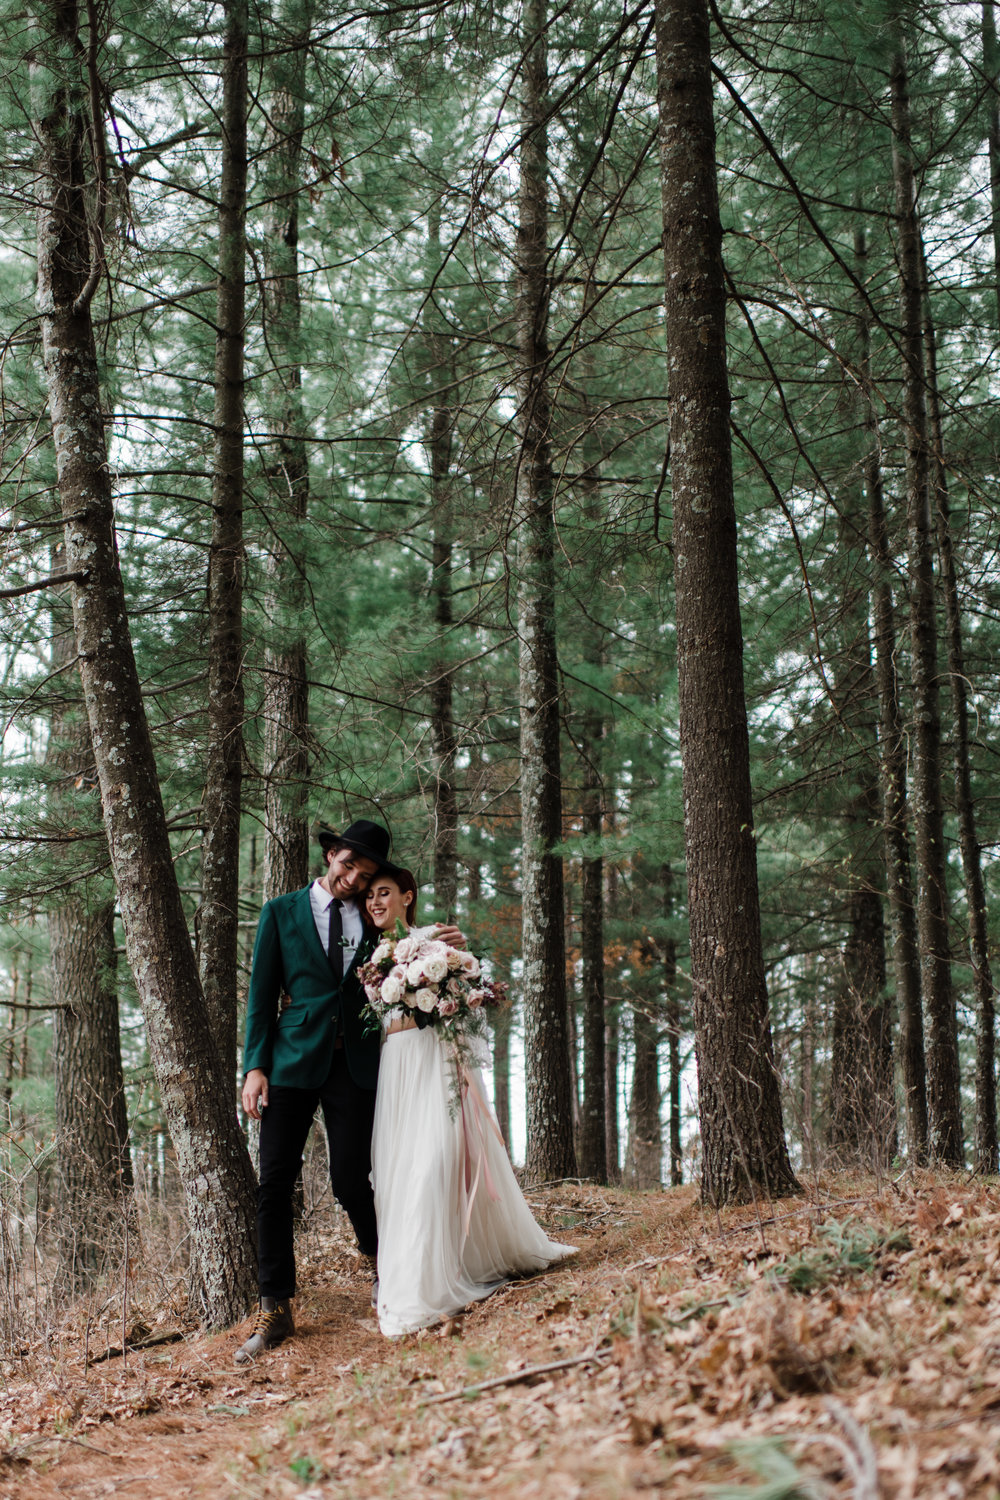 Couple wearing wedding attire walking with arms around each other in the Northwoods of Wisconsin.